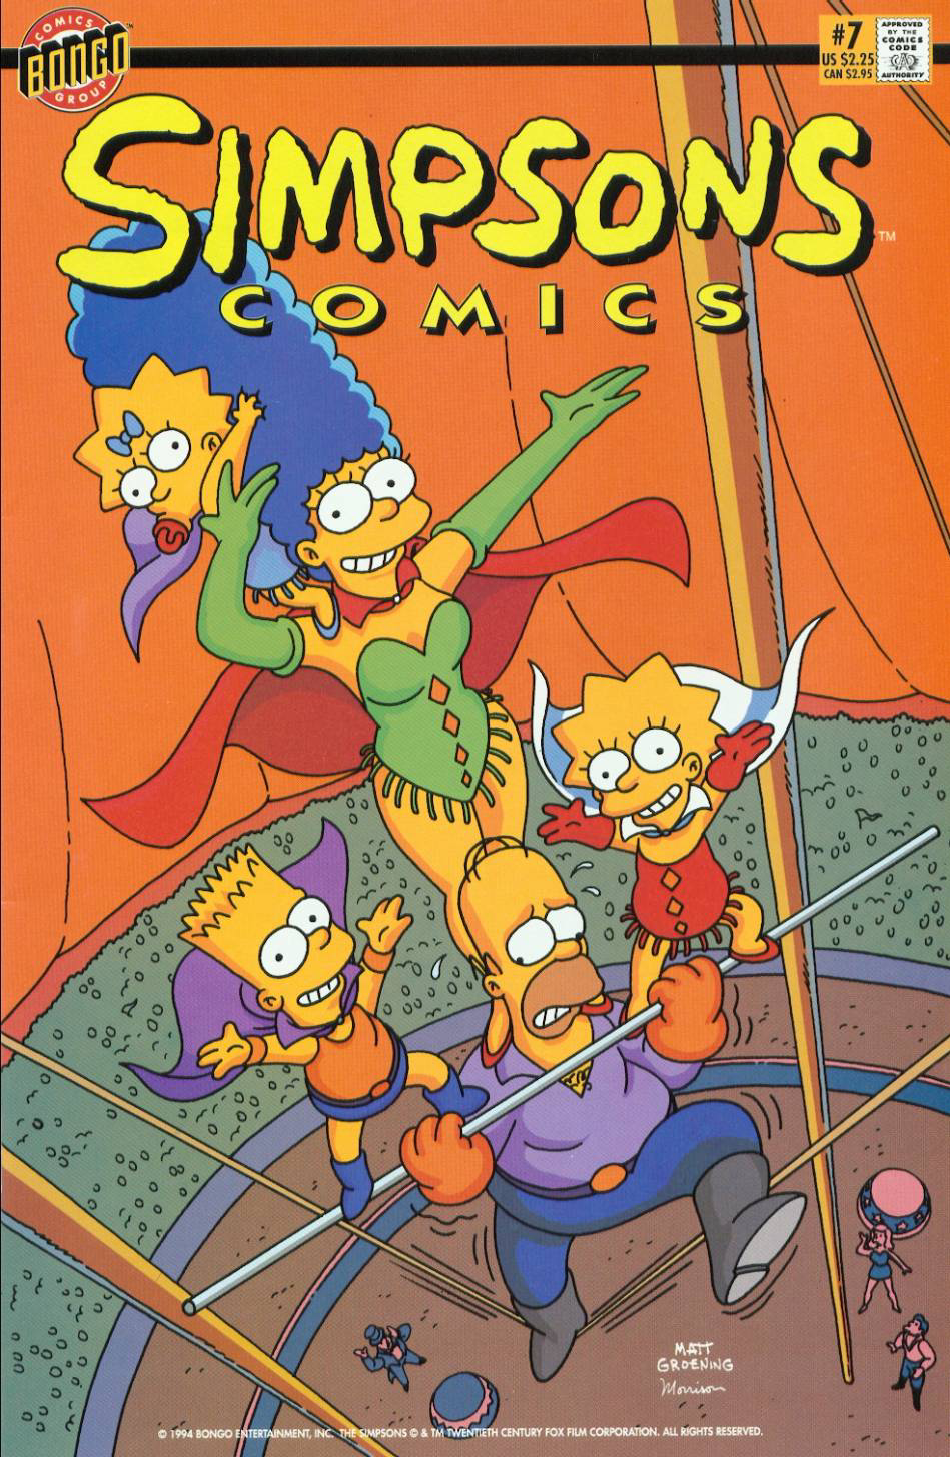 Simpsons Comics 7 (Front Cover).png